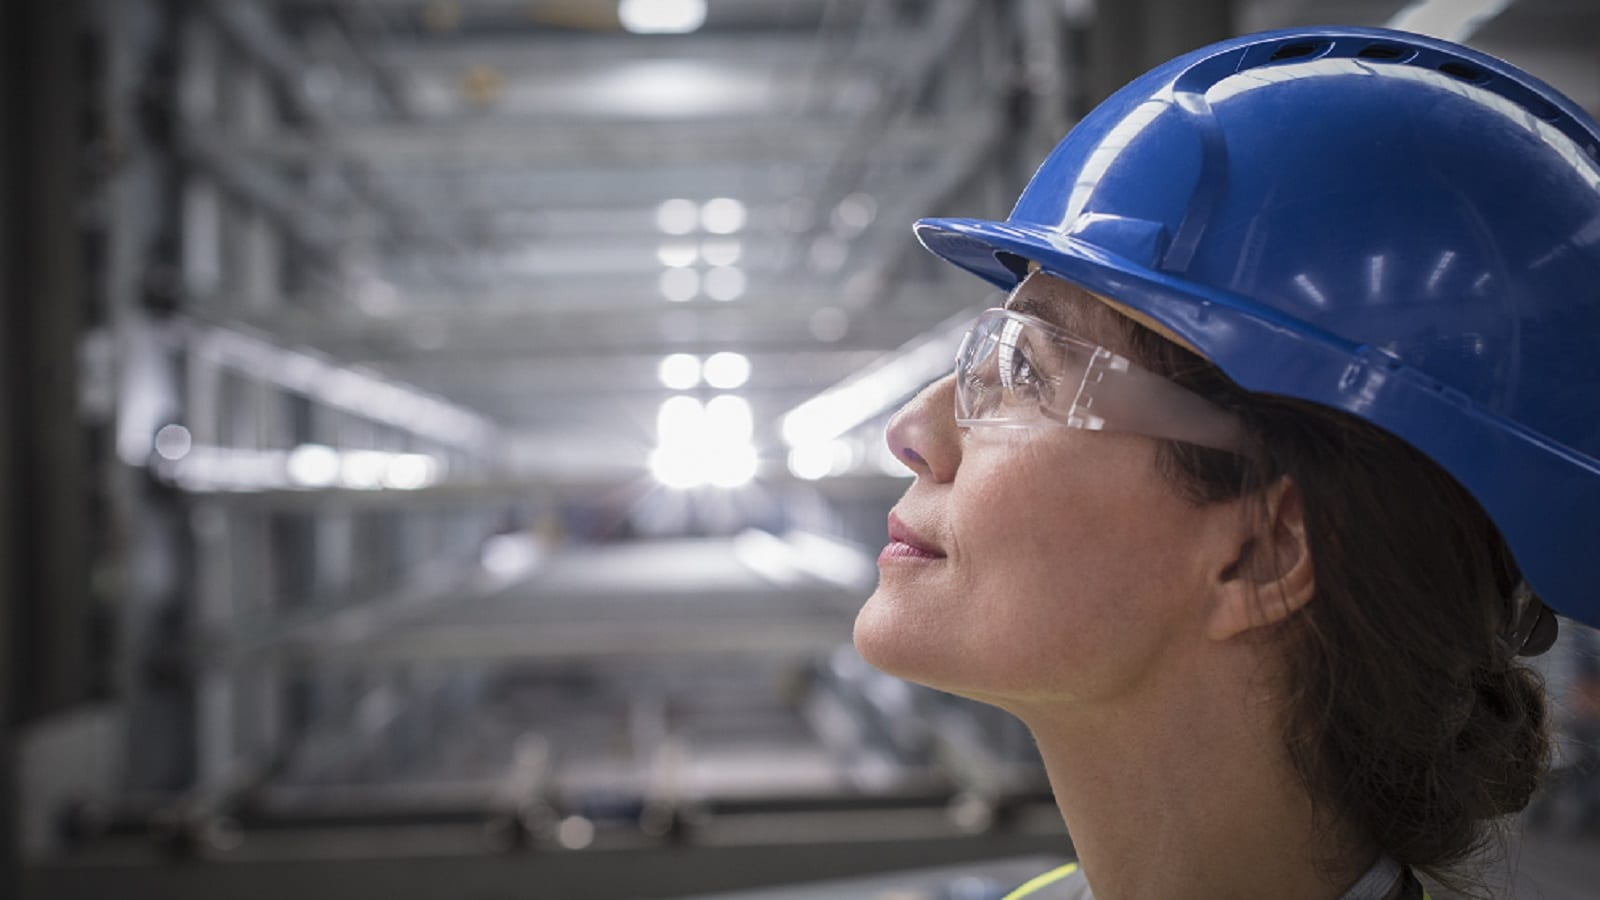 Female Factory Worker In A Blue Hard Hat Stock Photo